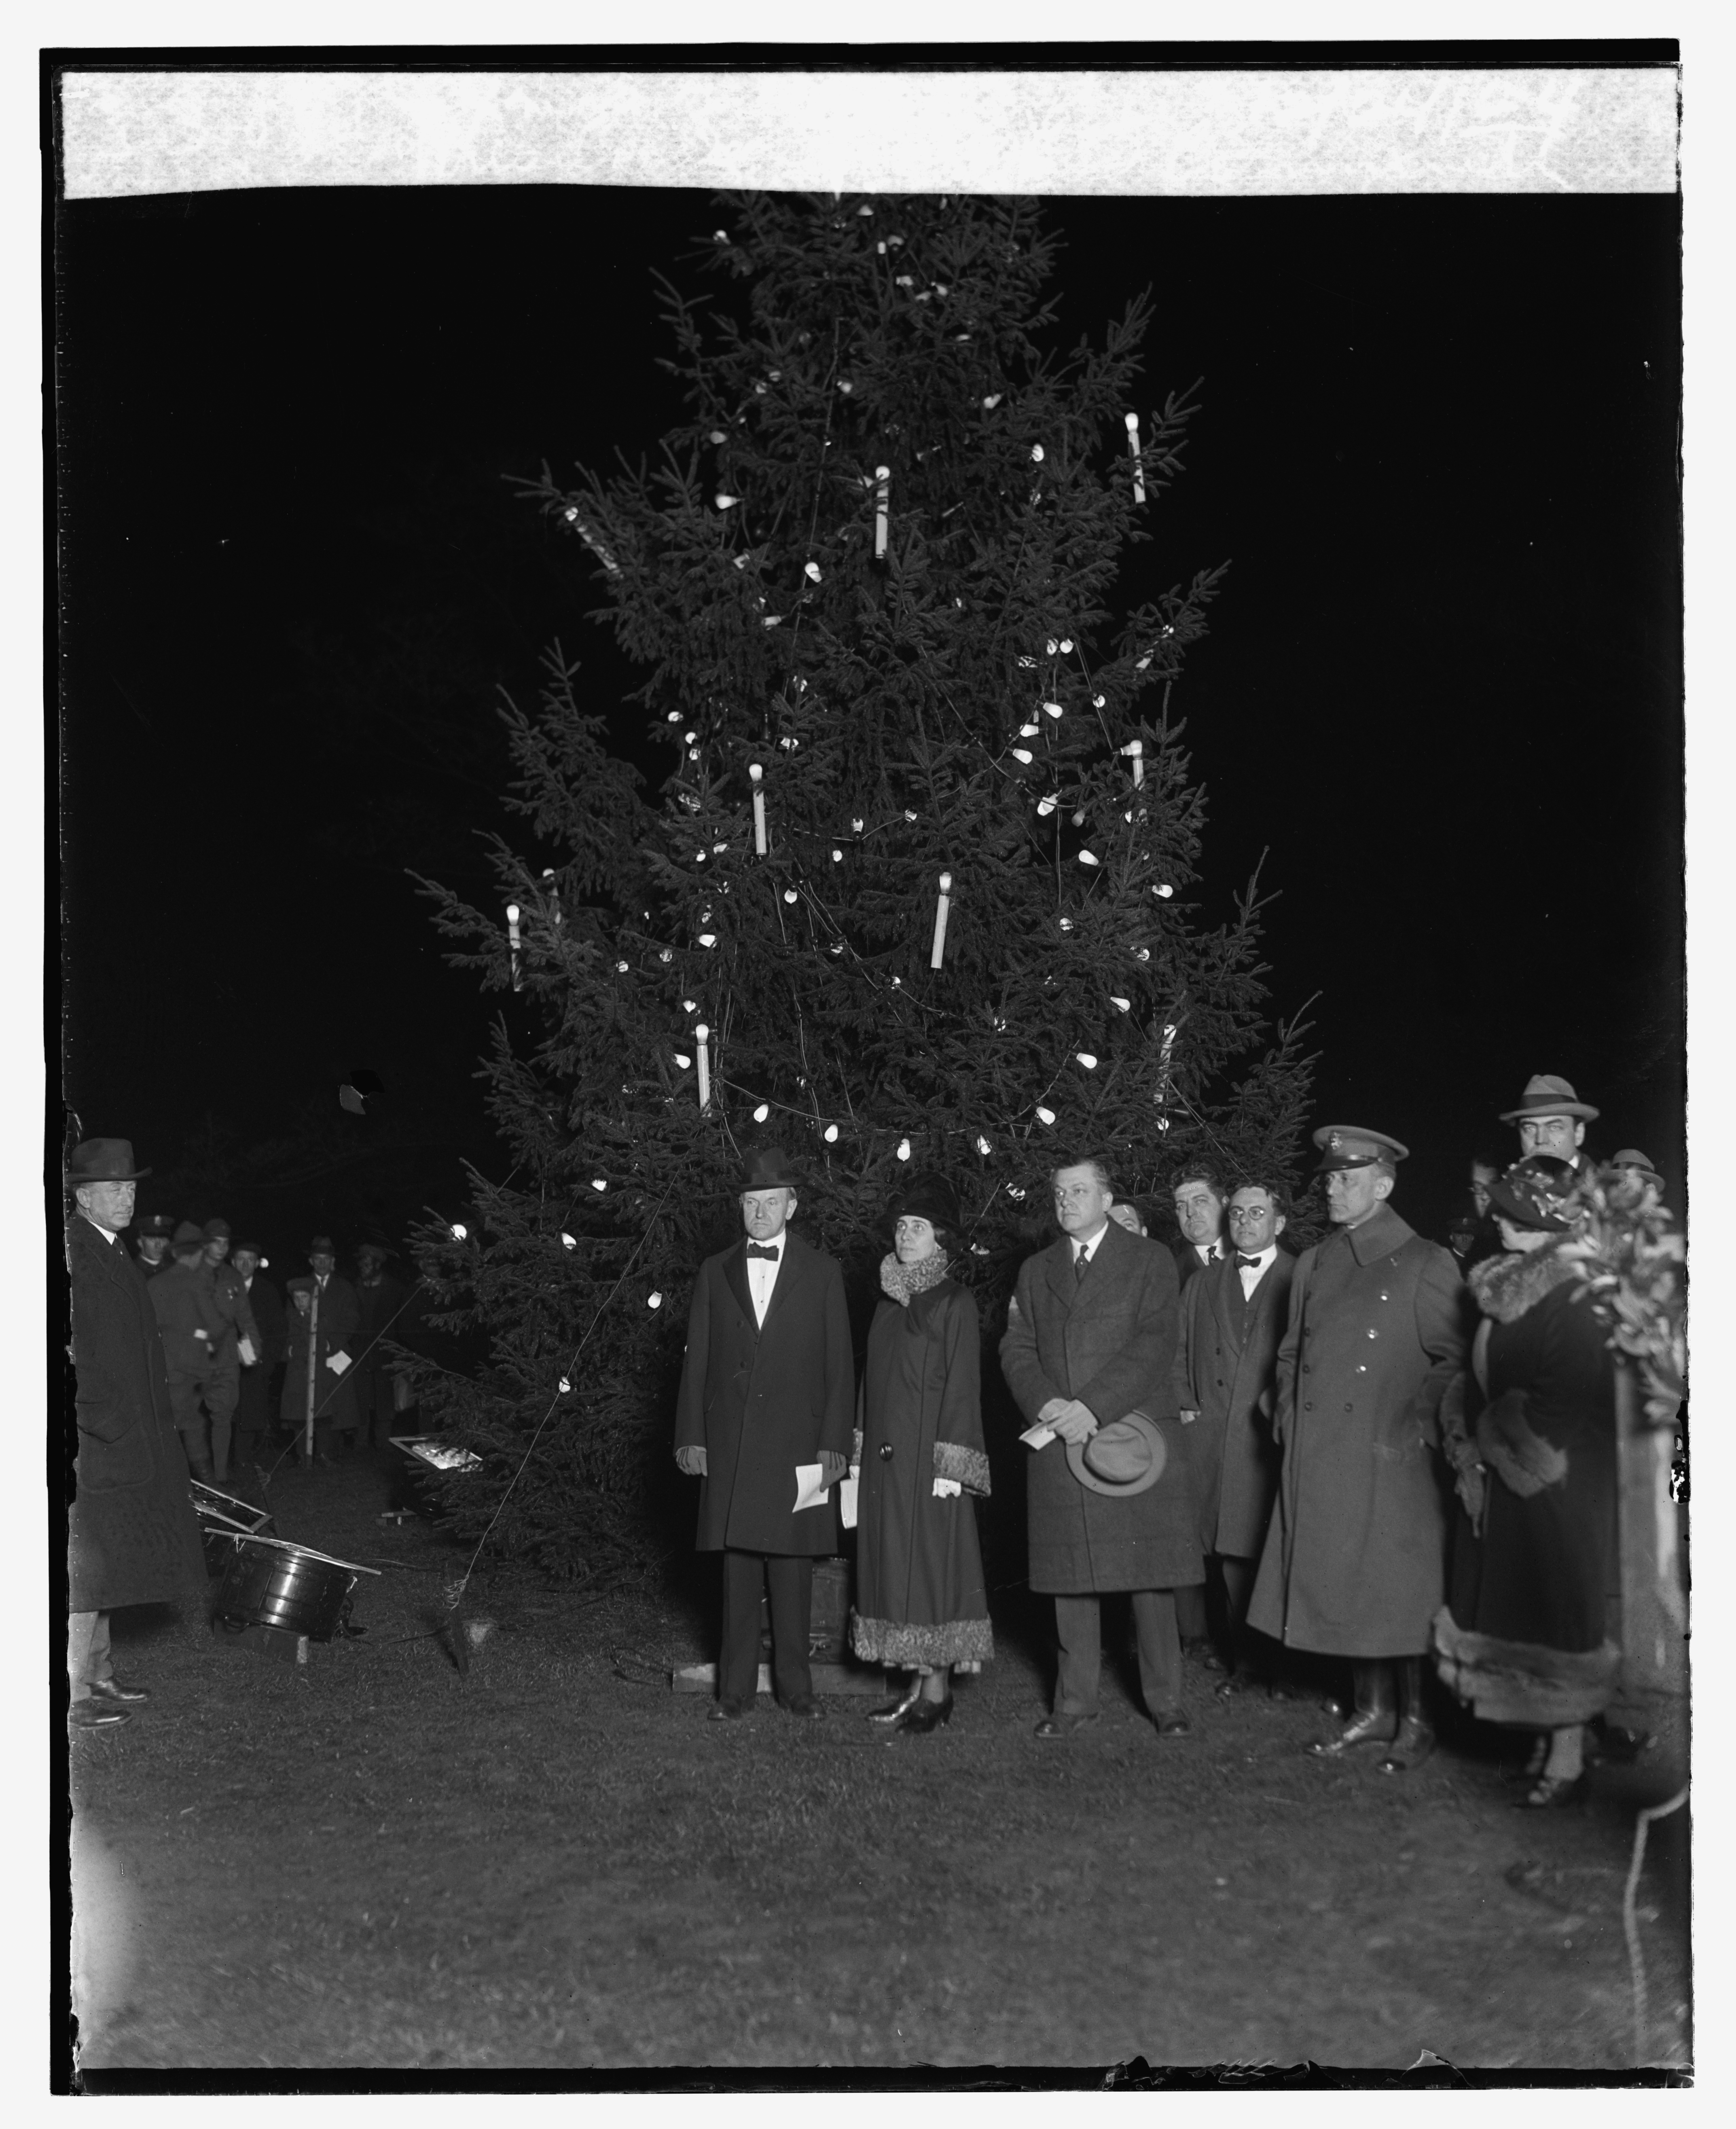 Calvin Coolidge, 30th President of the United States, lights the U.S. National Christmas Tree on Wednesday December 24th, 1924.